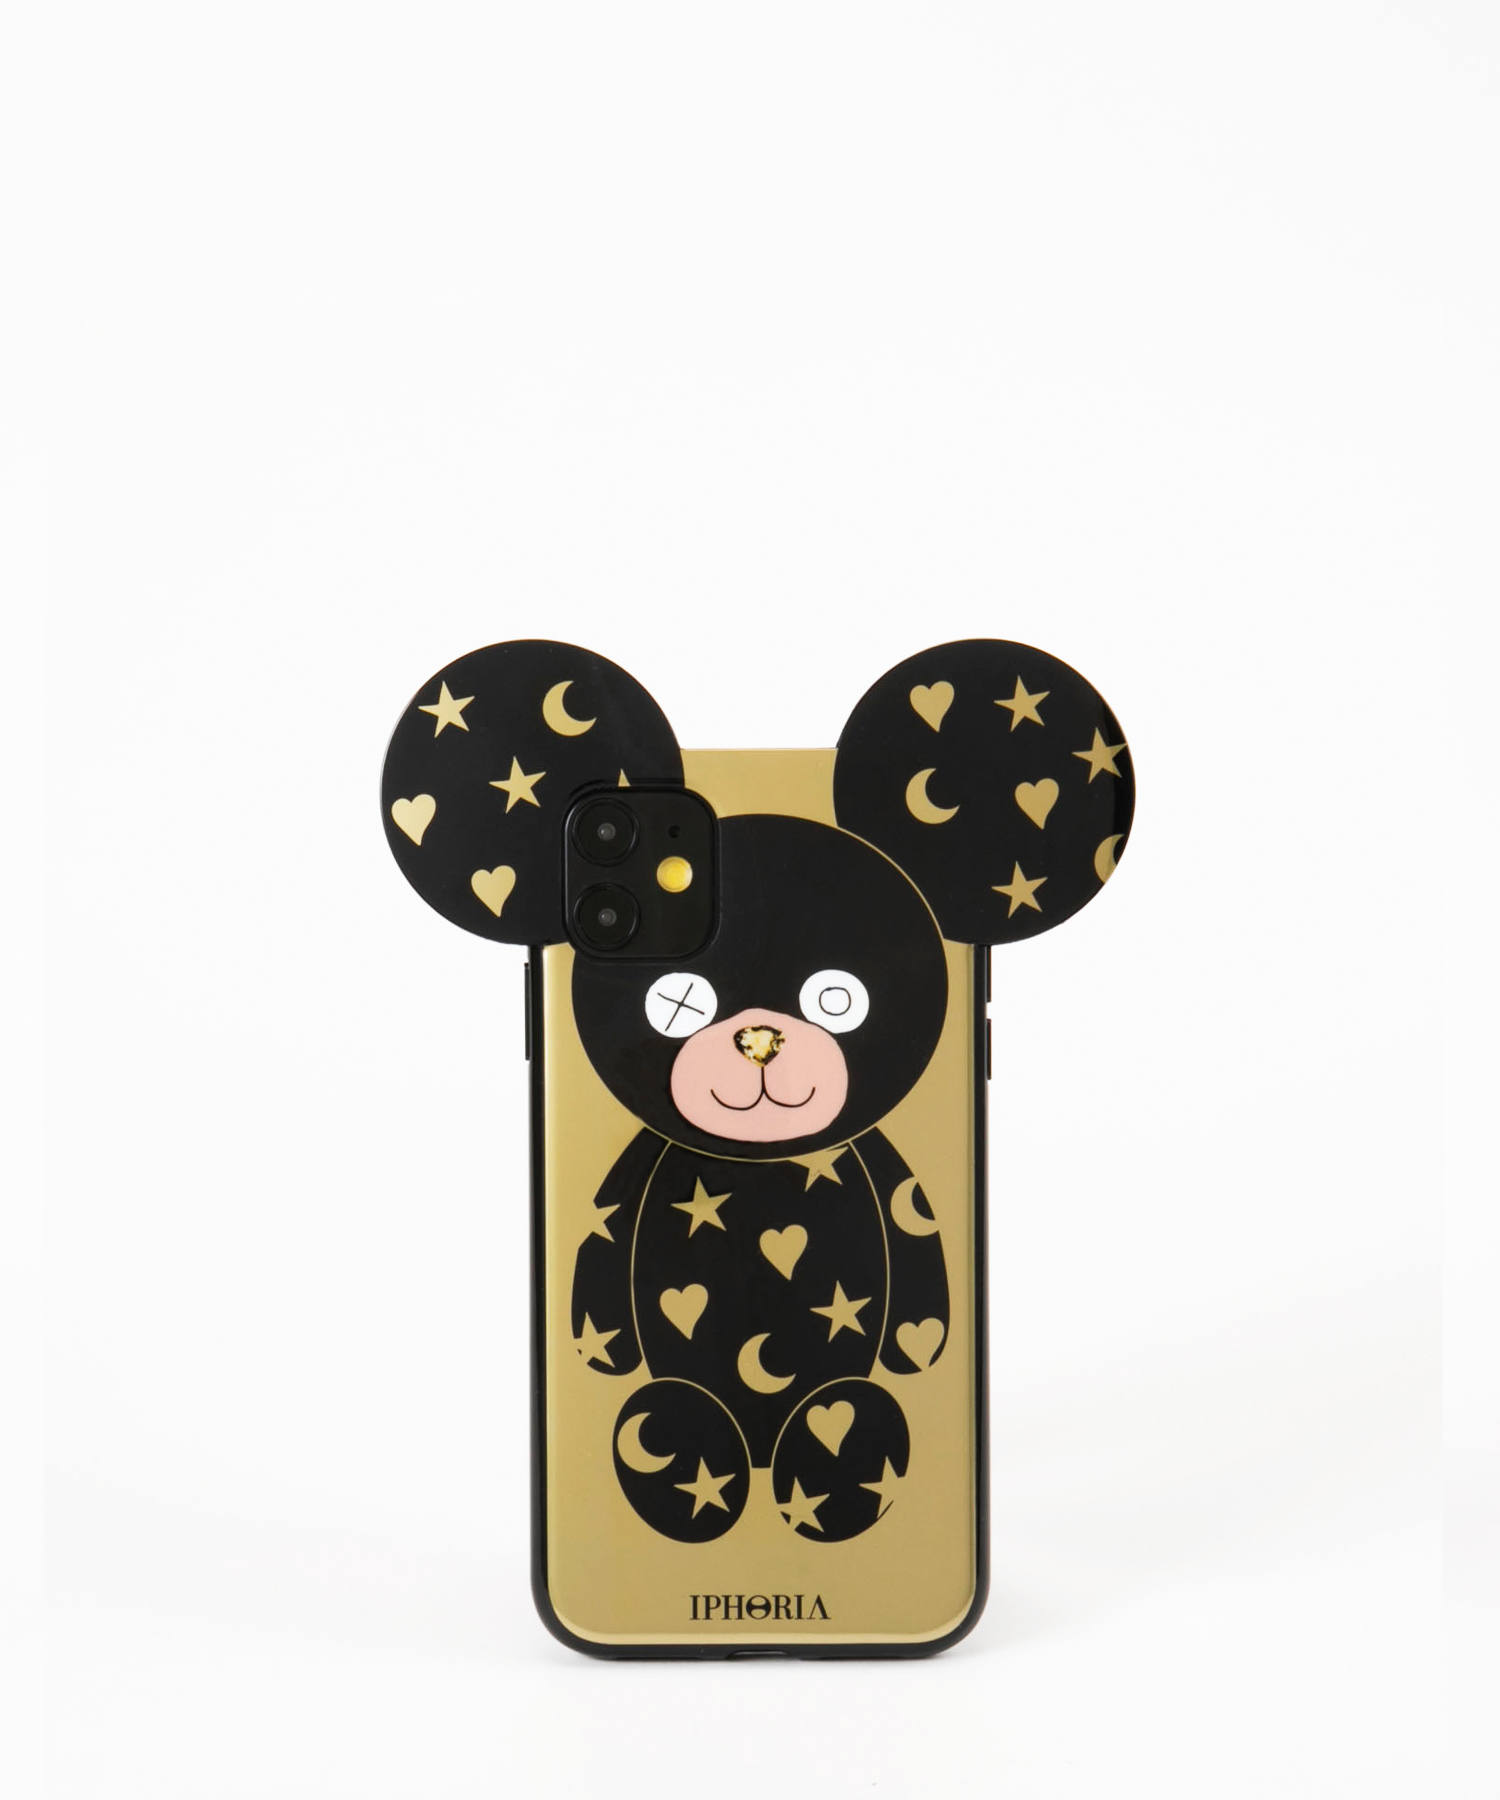 Case for Apple iPhone 11 - Teddy Golden Nightsky